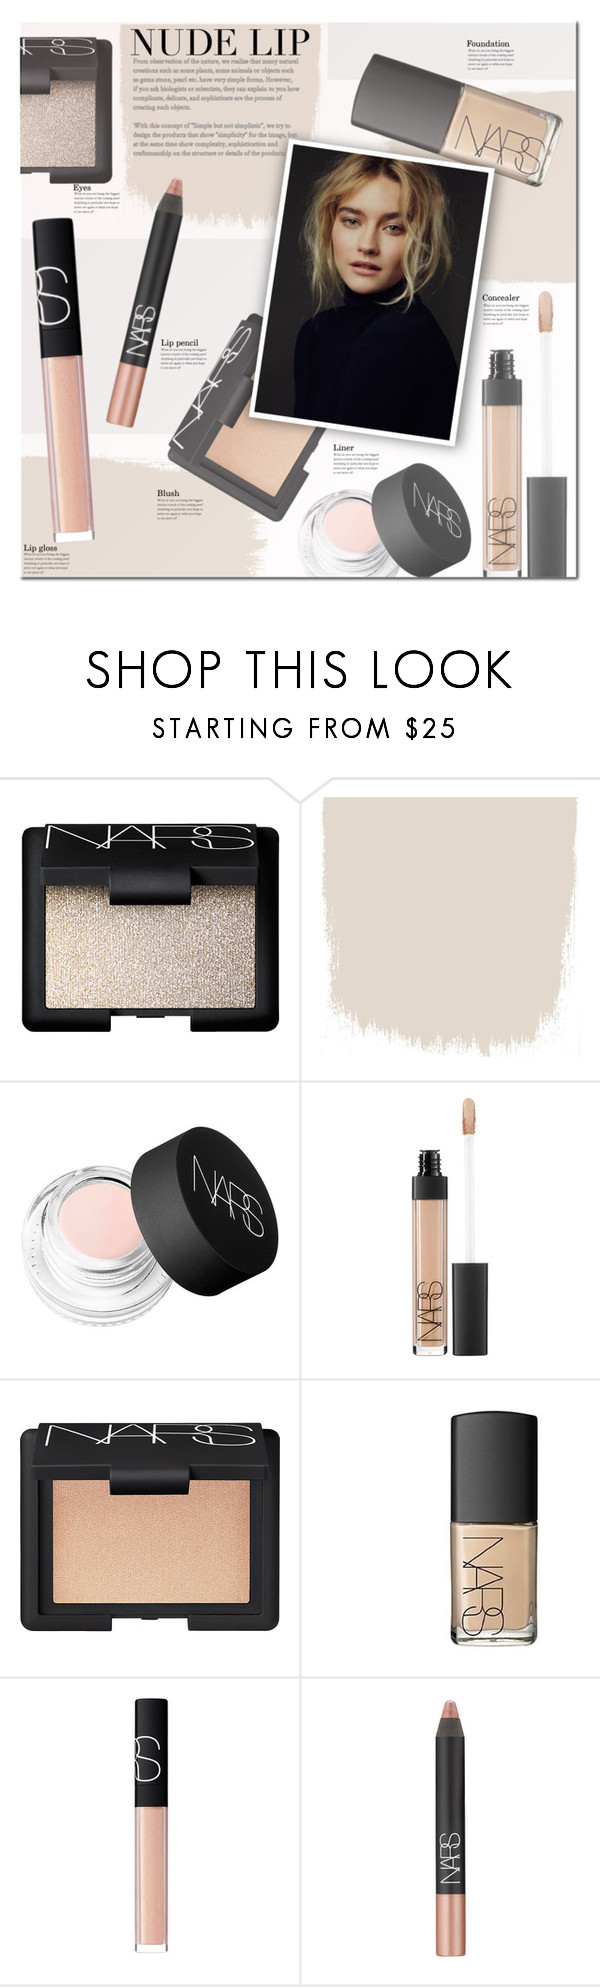 """""""The Perfect Nude Lip"""" by anna-anica ❤ liked on Polyvore featuring beauty, NARS Cosmetics, Beauty and nudelip"""